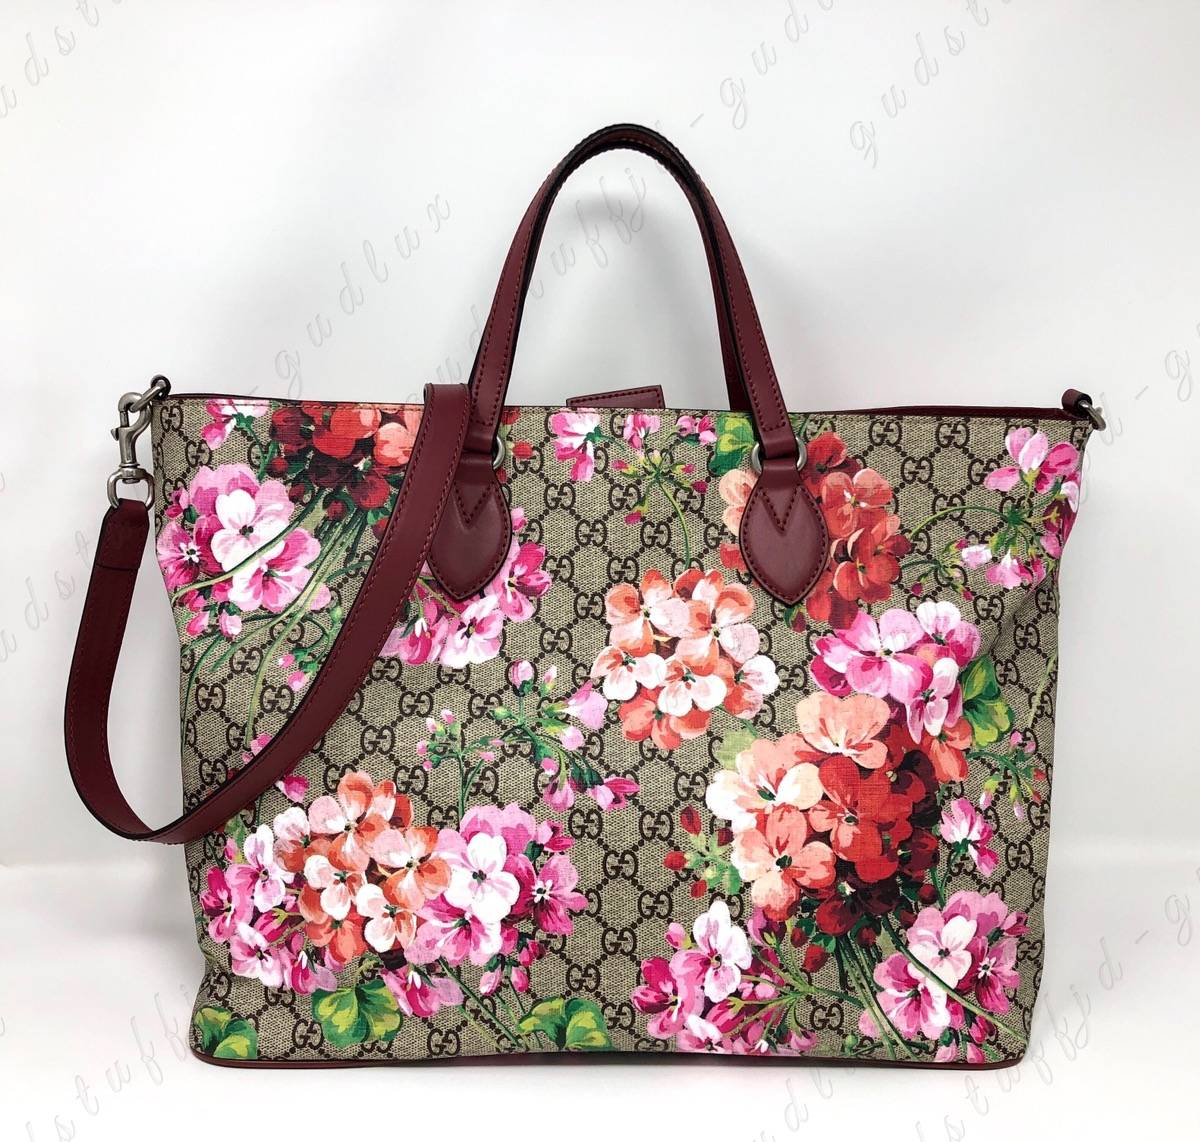 771c434b5b3 Gucci NWOT Medium GG Medium Soft Supreme Blooms Tote with Strap Size one  size - Bags   Luggage for Sale - Grailed